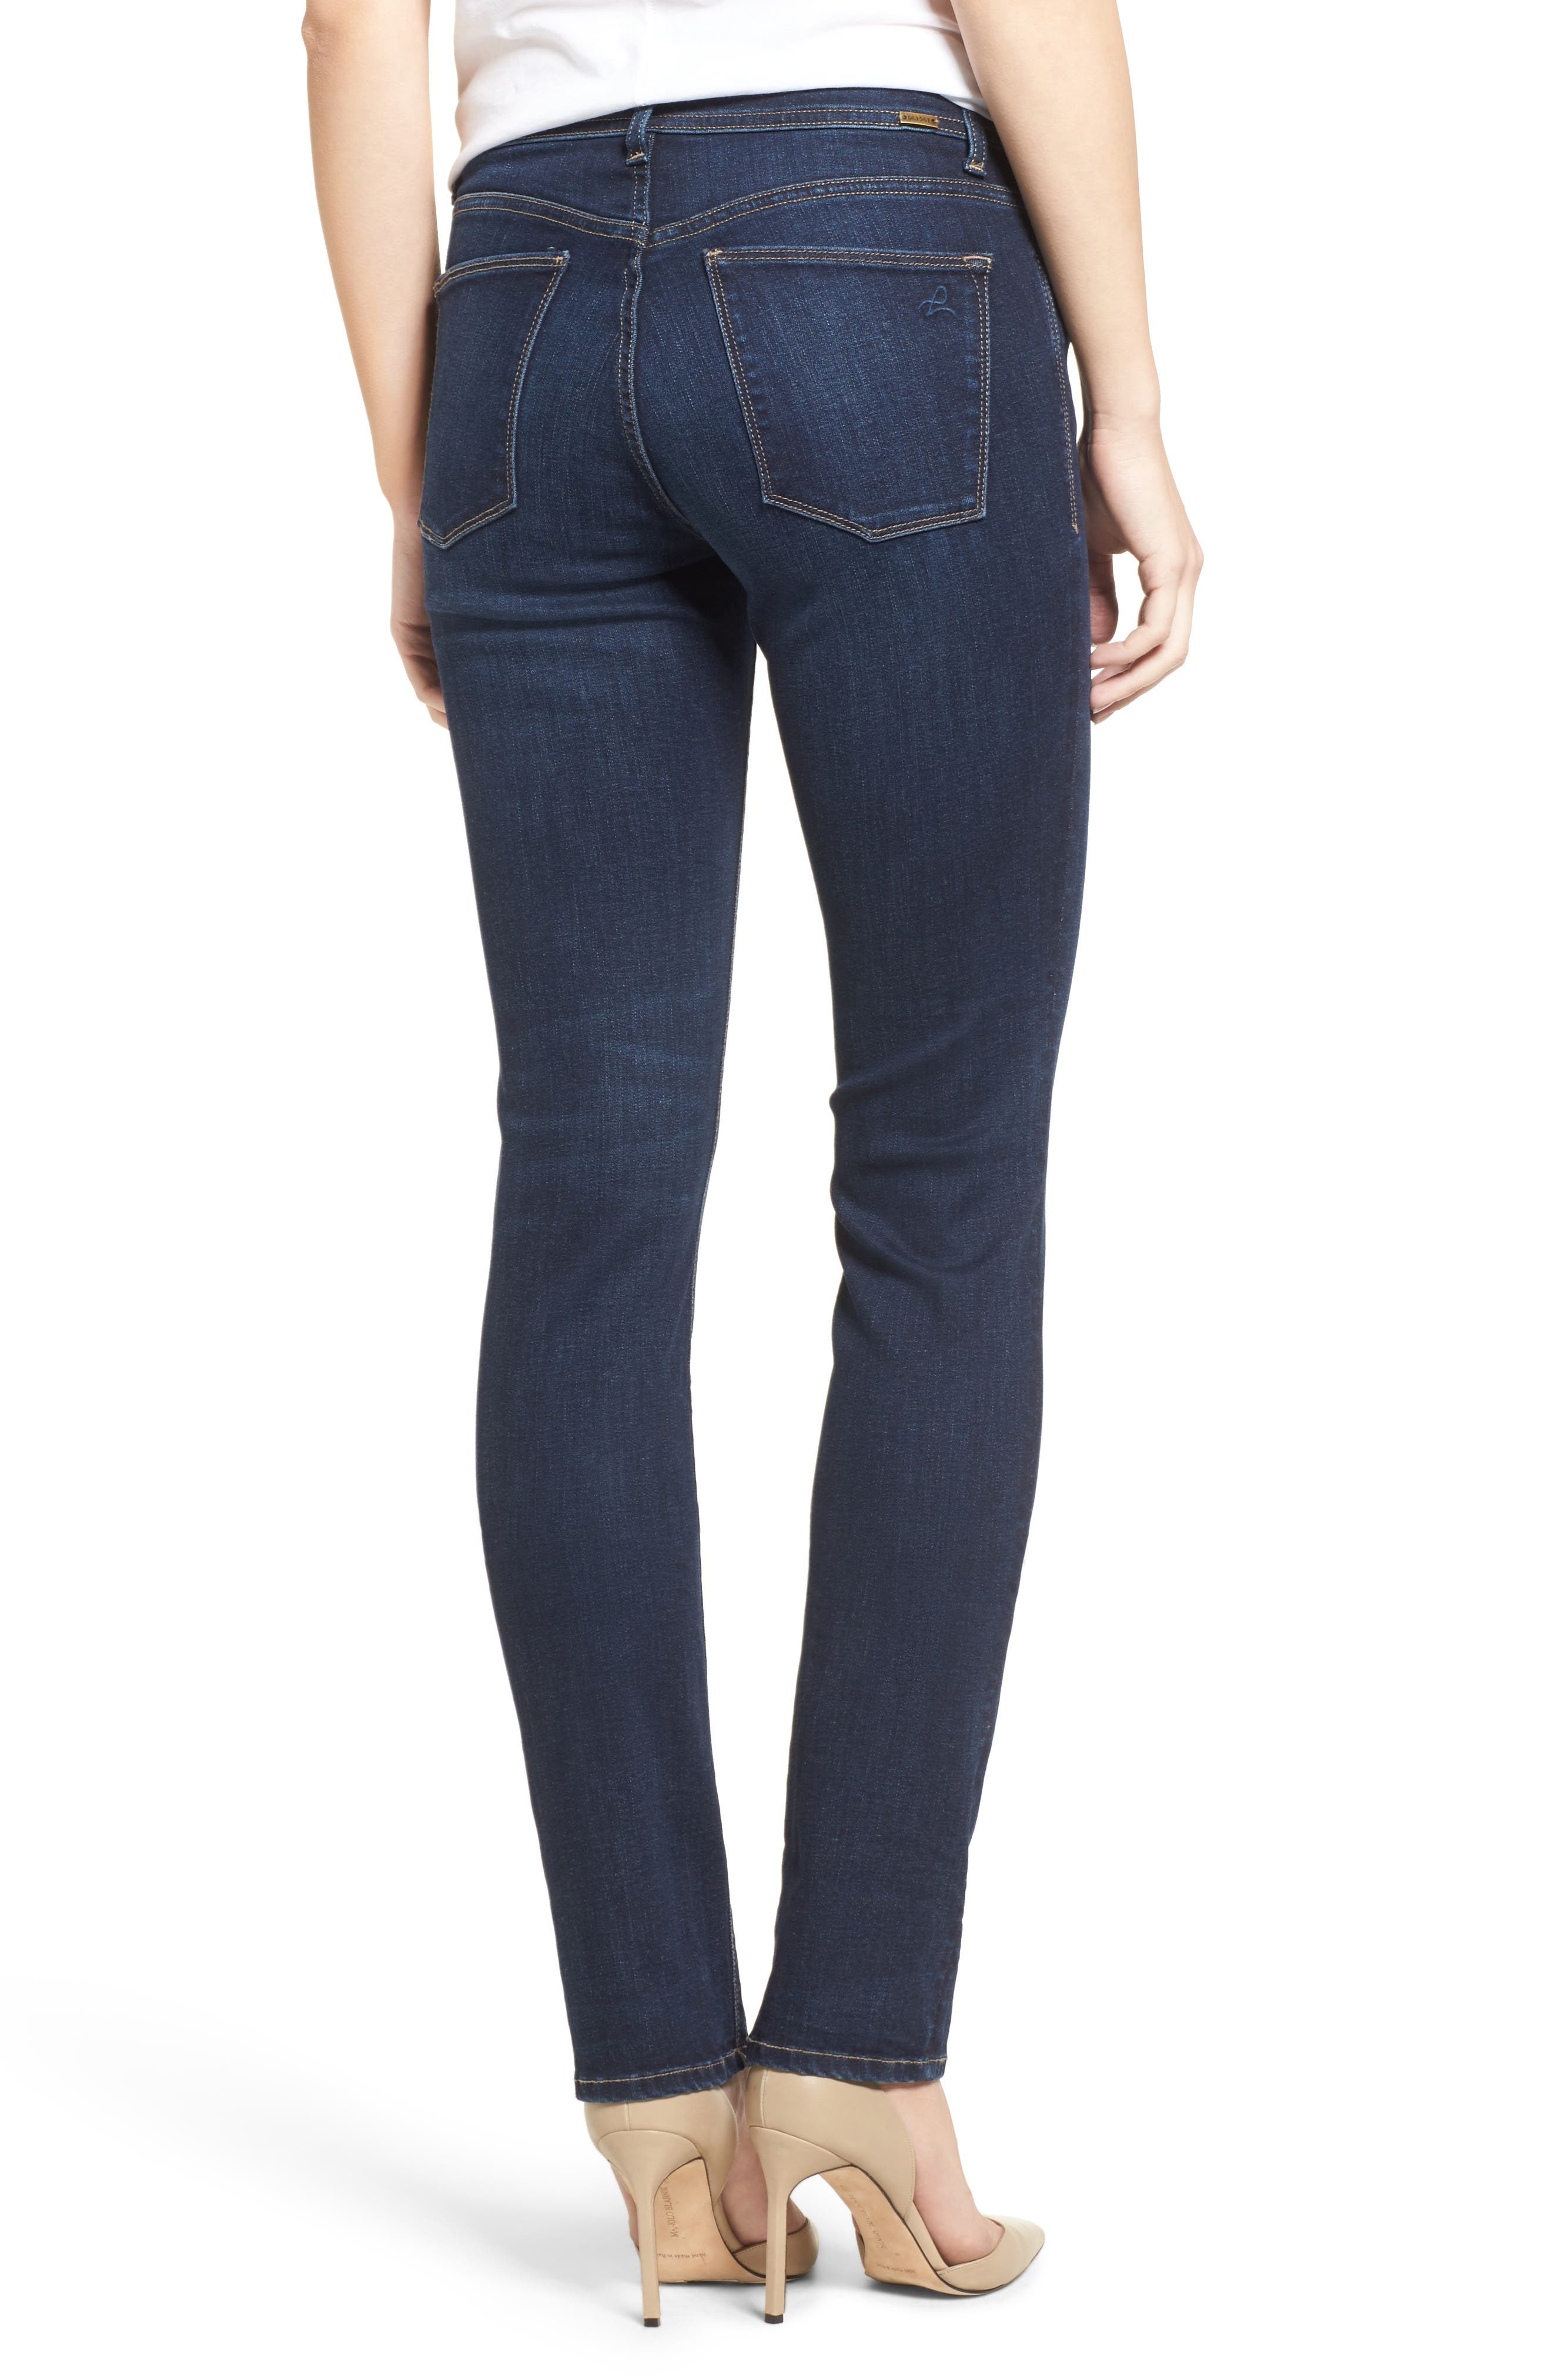 'Coco' Curvy Slim Straight Leg Jeans,                             Alternate thumbnail 3, color,